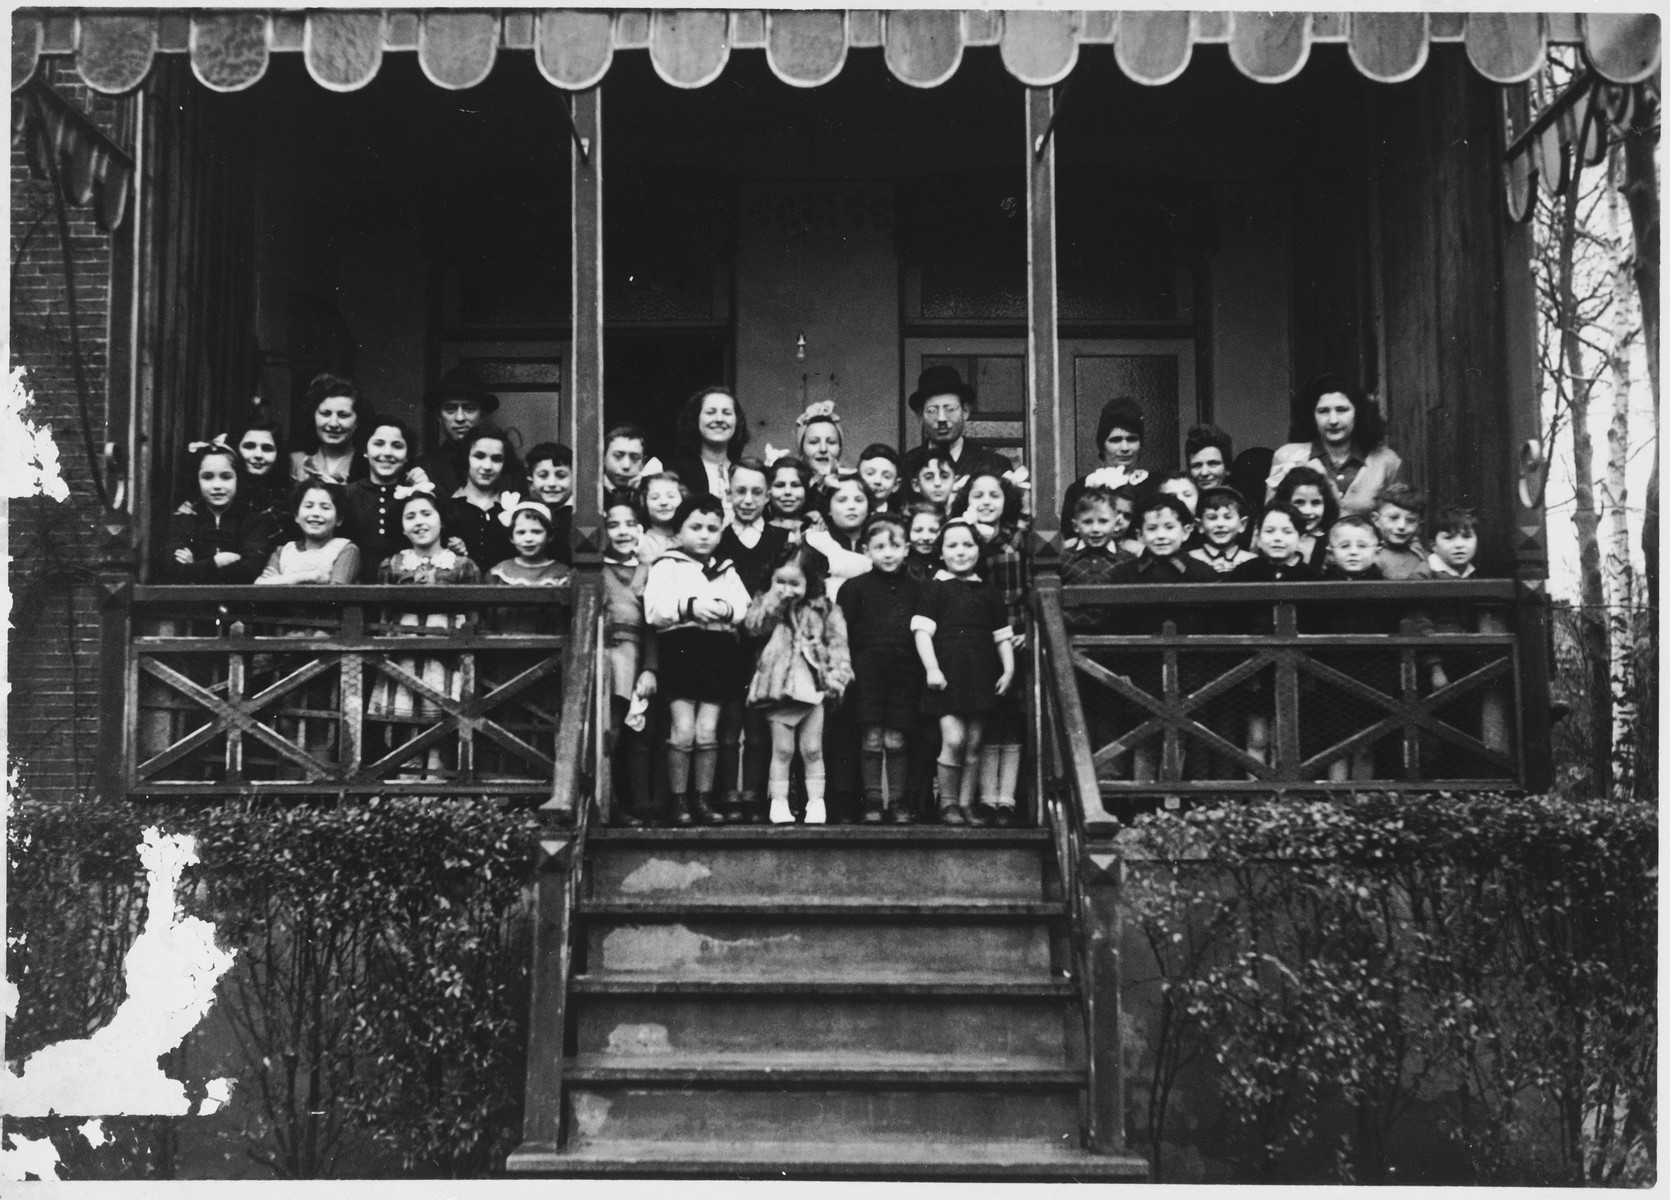 Group portrait of the children and staff of the Mariaburg DP children's home near Antwerp.  Among those pictured are Jonas and Ruth Tiefenbrunner. To their left is another teacher, Miriam Zupnick.  In front is their daughter Jannette.